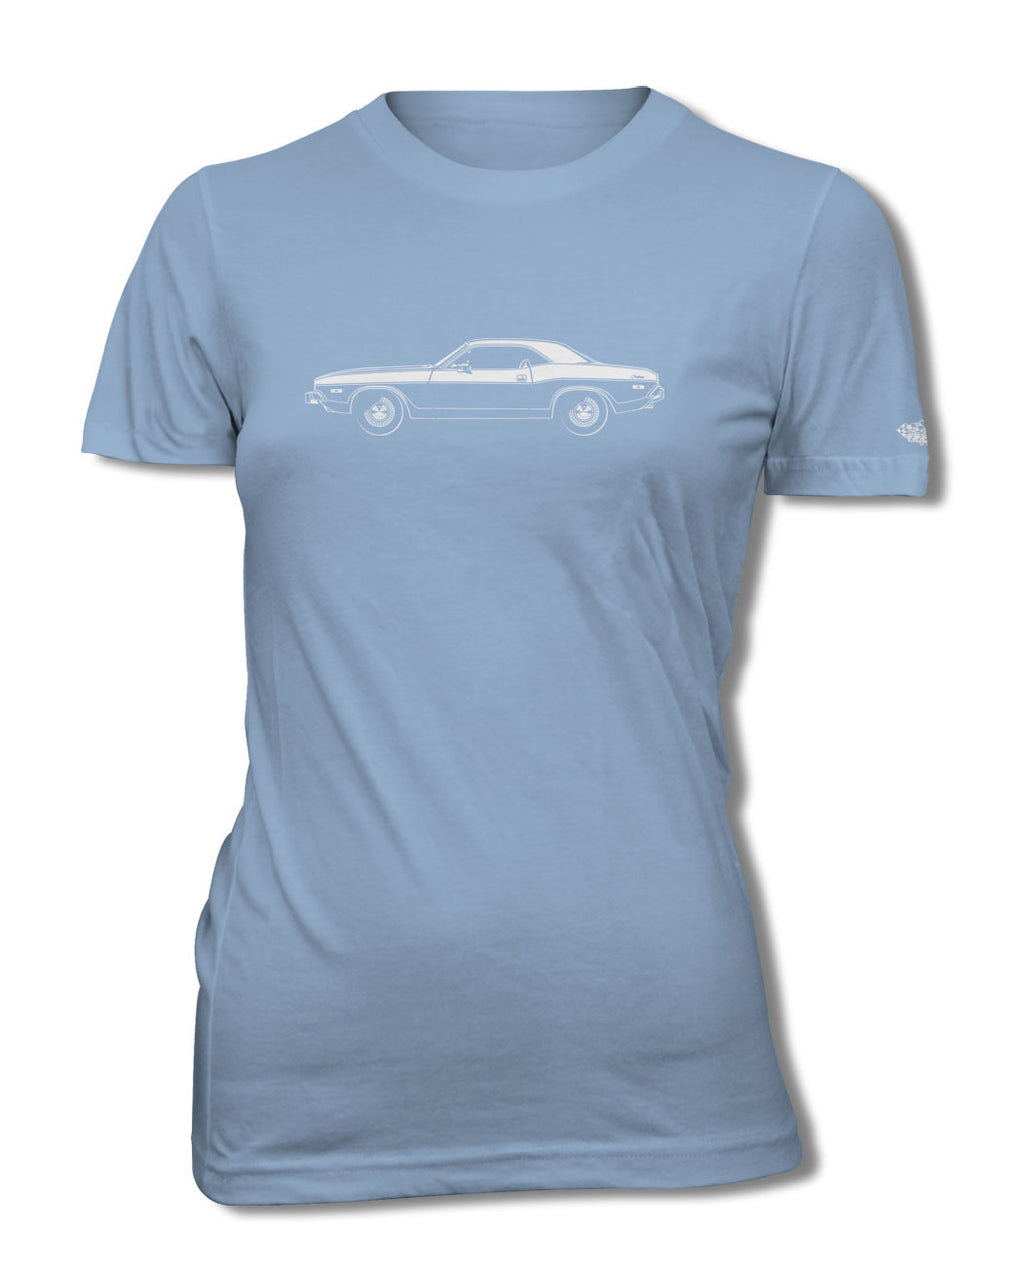 1973 Dodge Challenger Base Coupe T-Shirt - Women - Side View